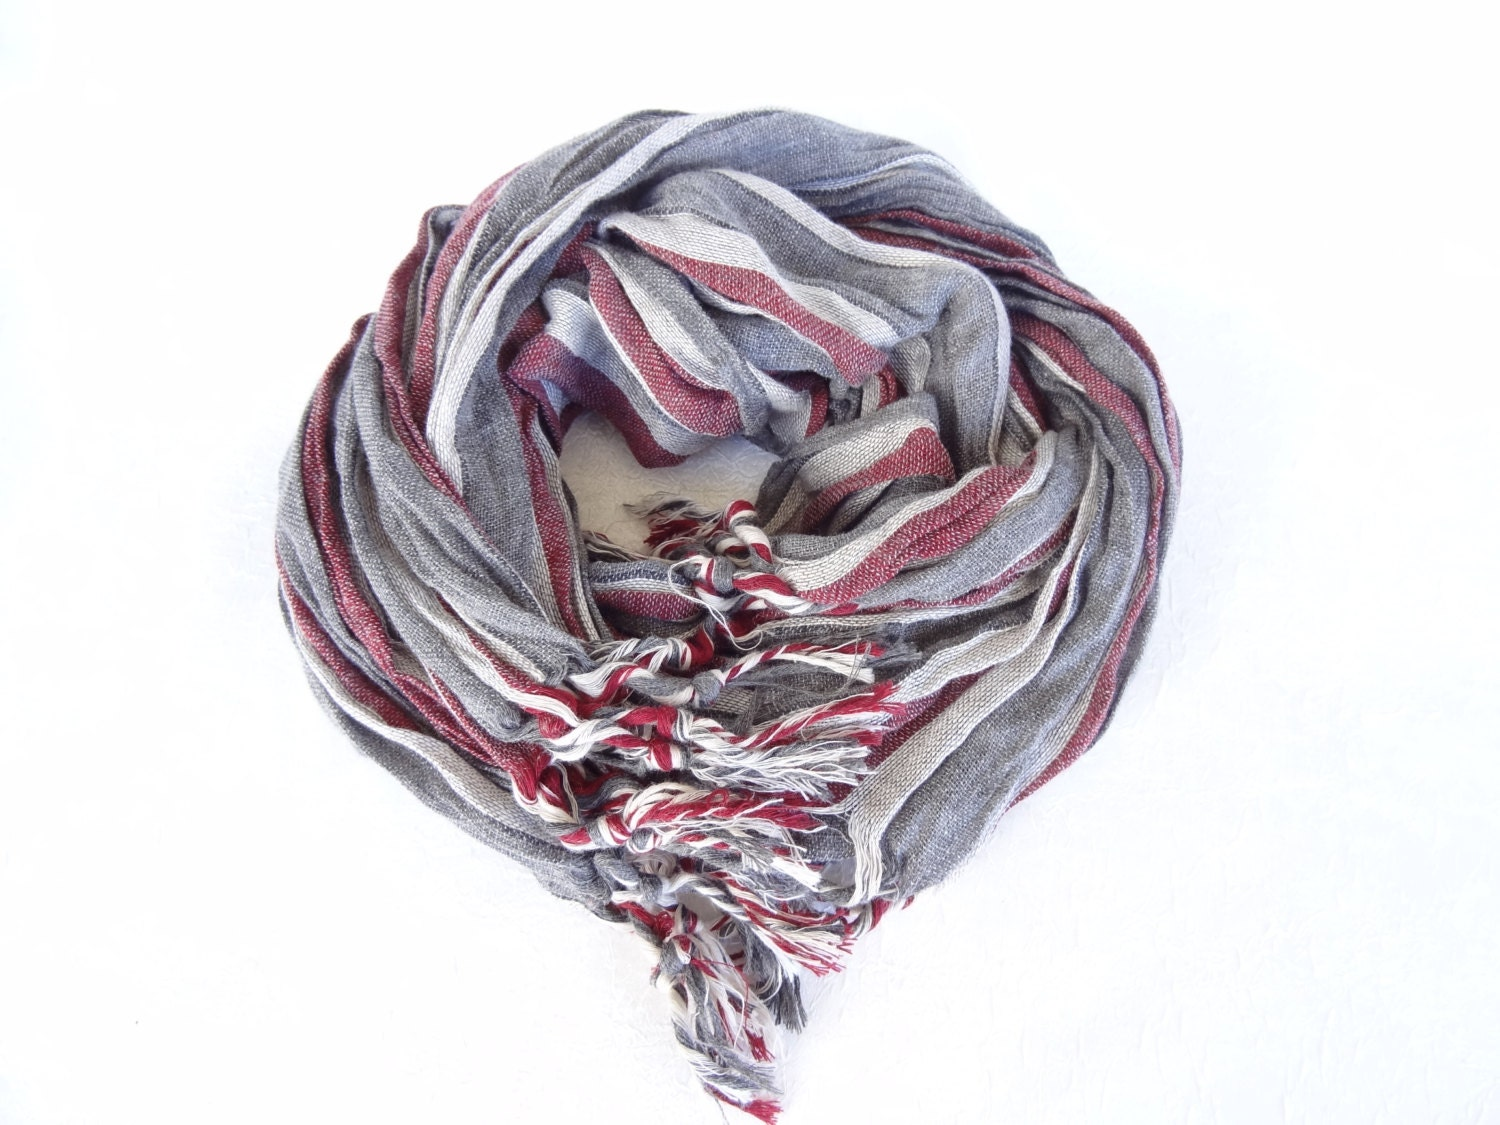 handwoven multicolored scarf greyburgundywhite striped